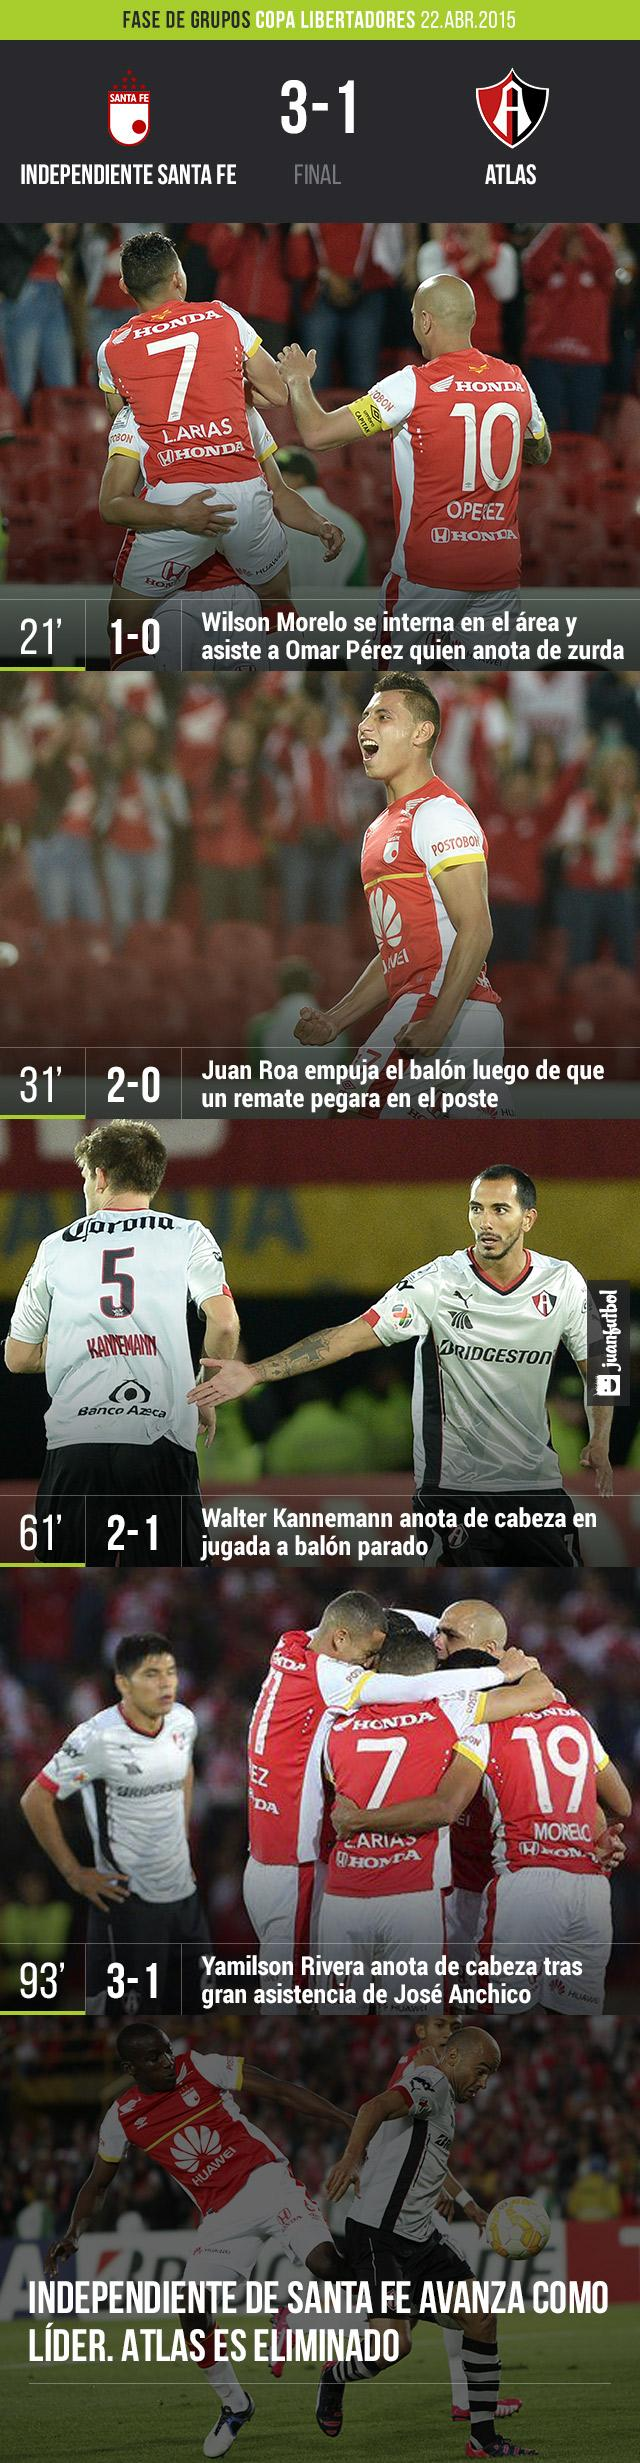 Independiente de Santa Fe vs Atlas, Copa Libertadores